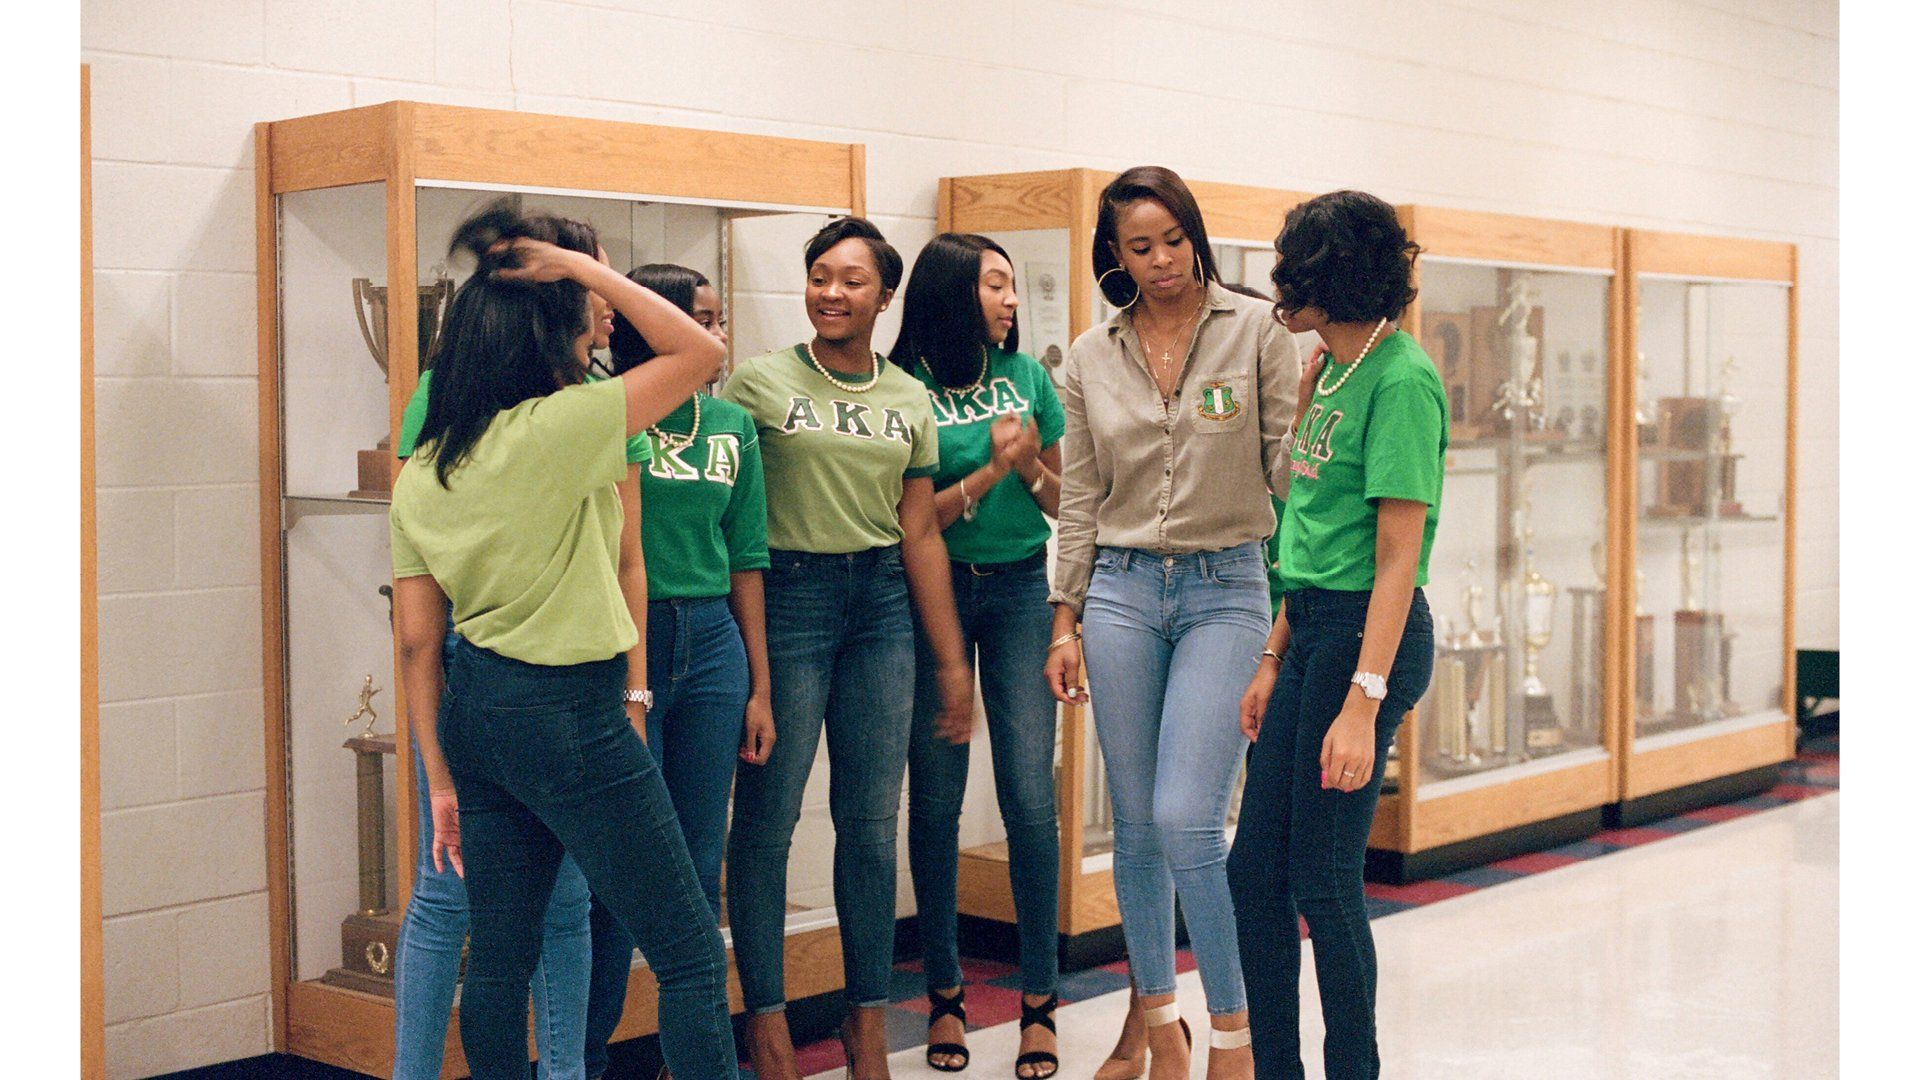 """The Women of Alpha Kappa Alpha"" - LaMani Adkins, Sky Myers, Kandlar Rhodes, and Brianna Gaulding on the Morehouse College campus. Ph Mayan Toledano. 125 anniversary Vogue US - Not Only Twenty, fashion blog over 40"